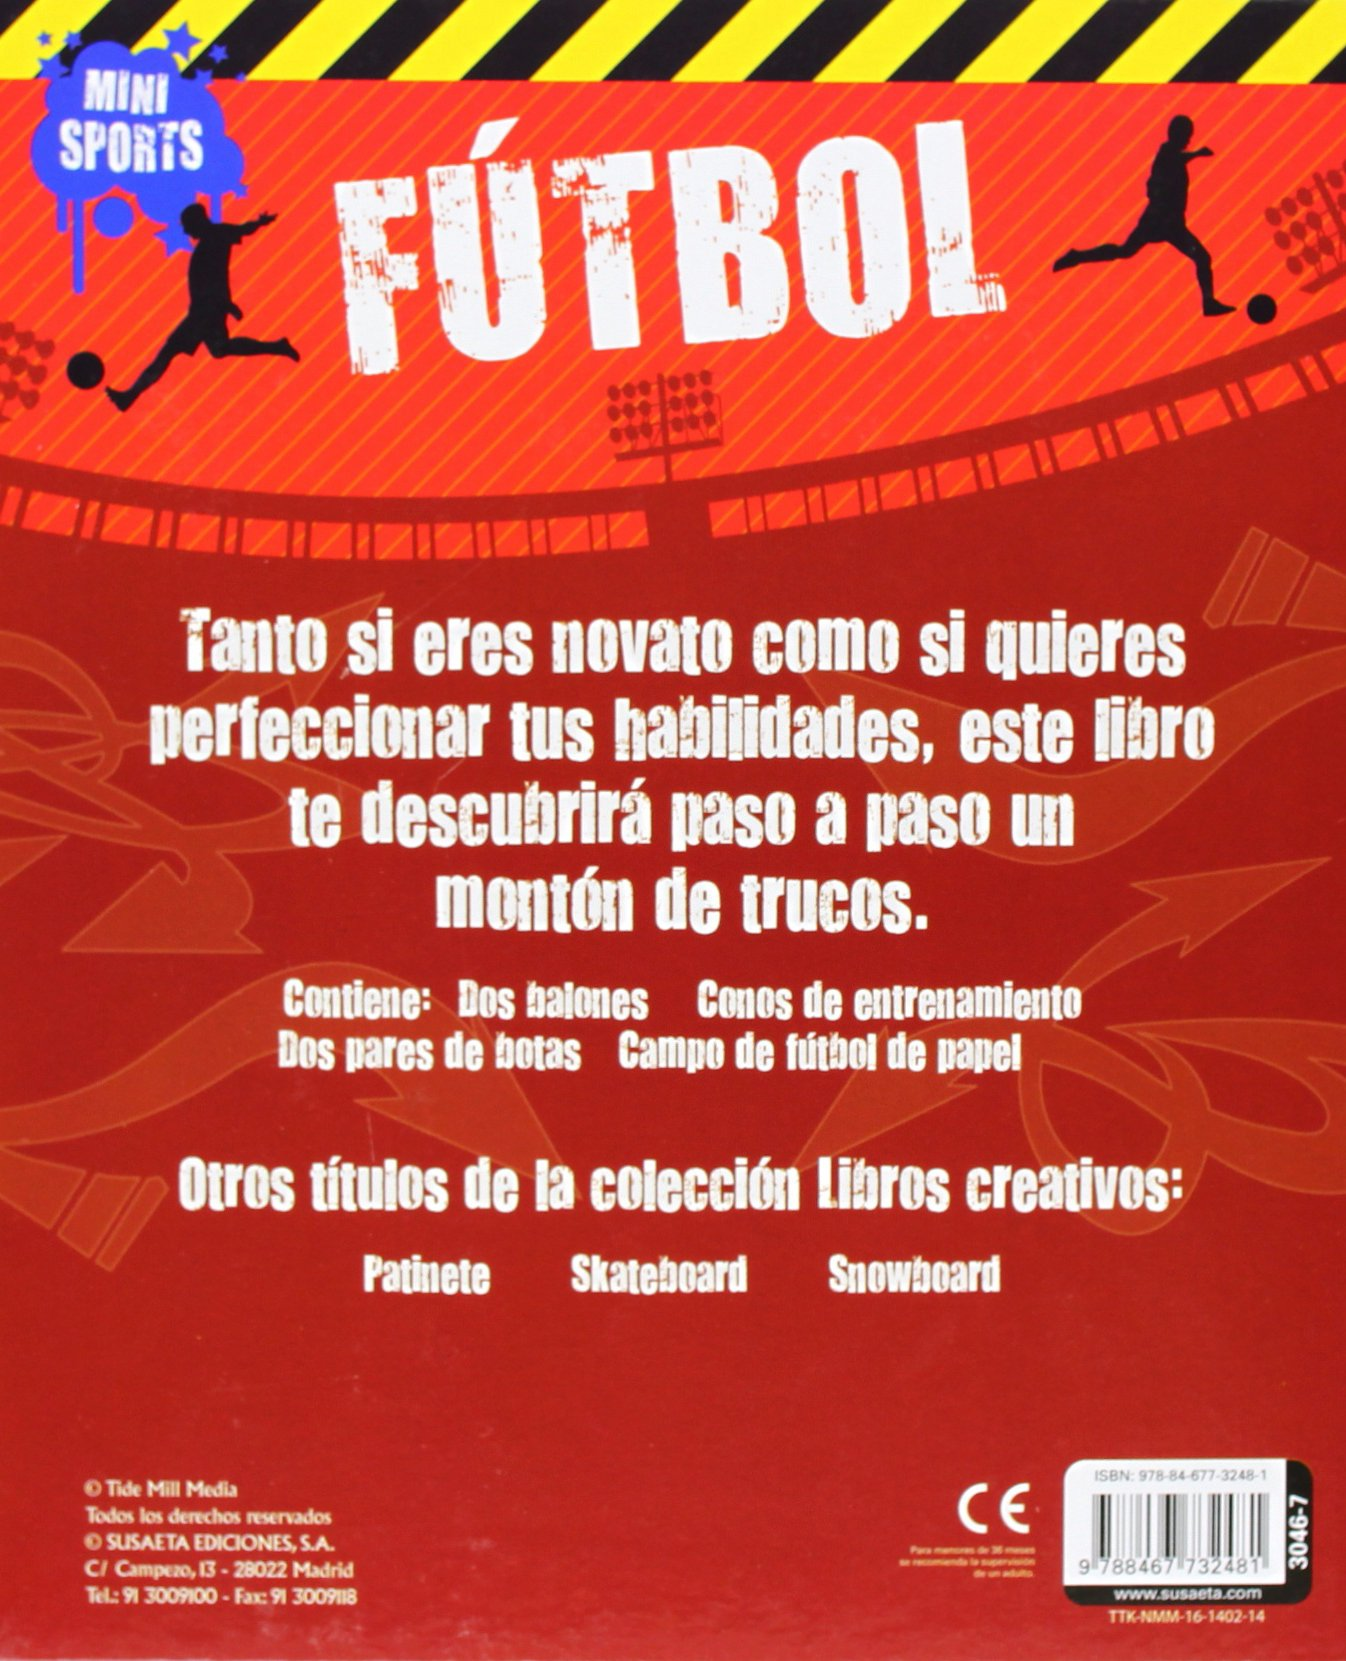 Fútbol: 9788467732481: Amazon.com: Books